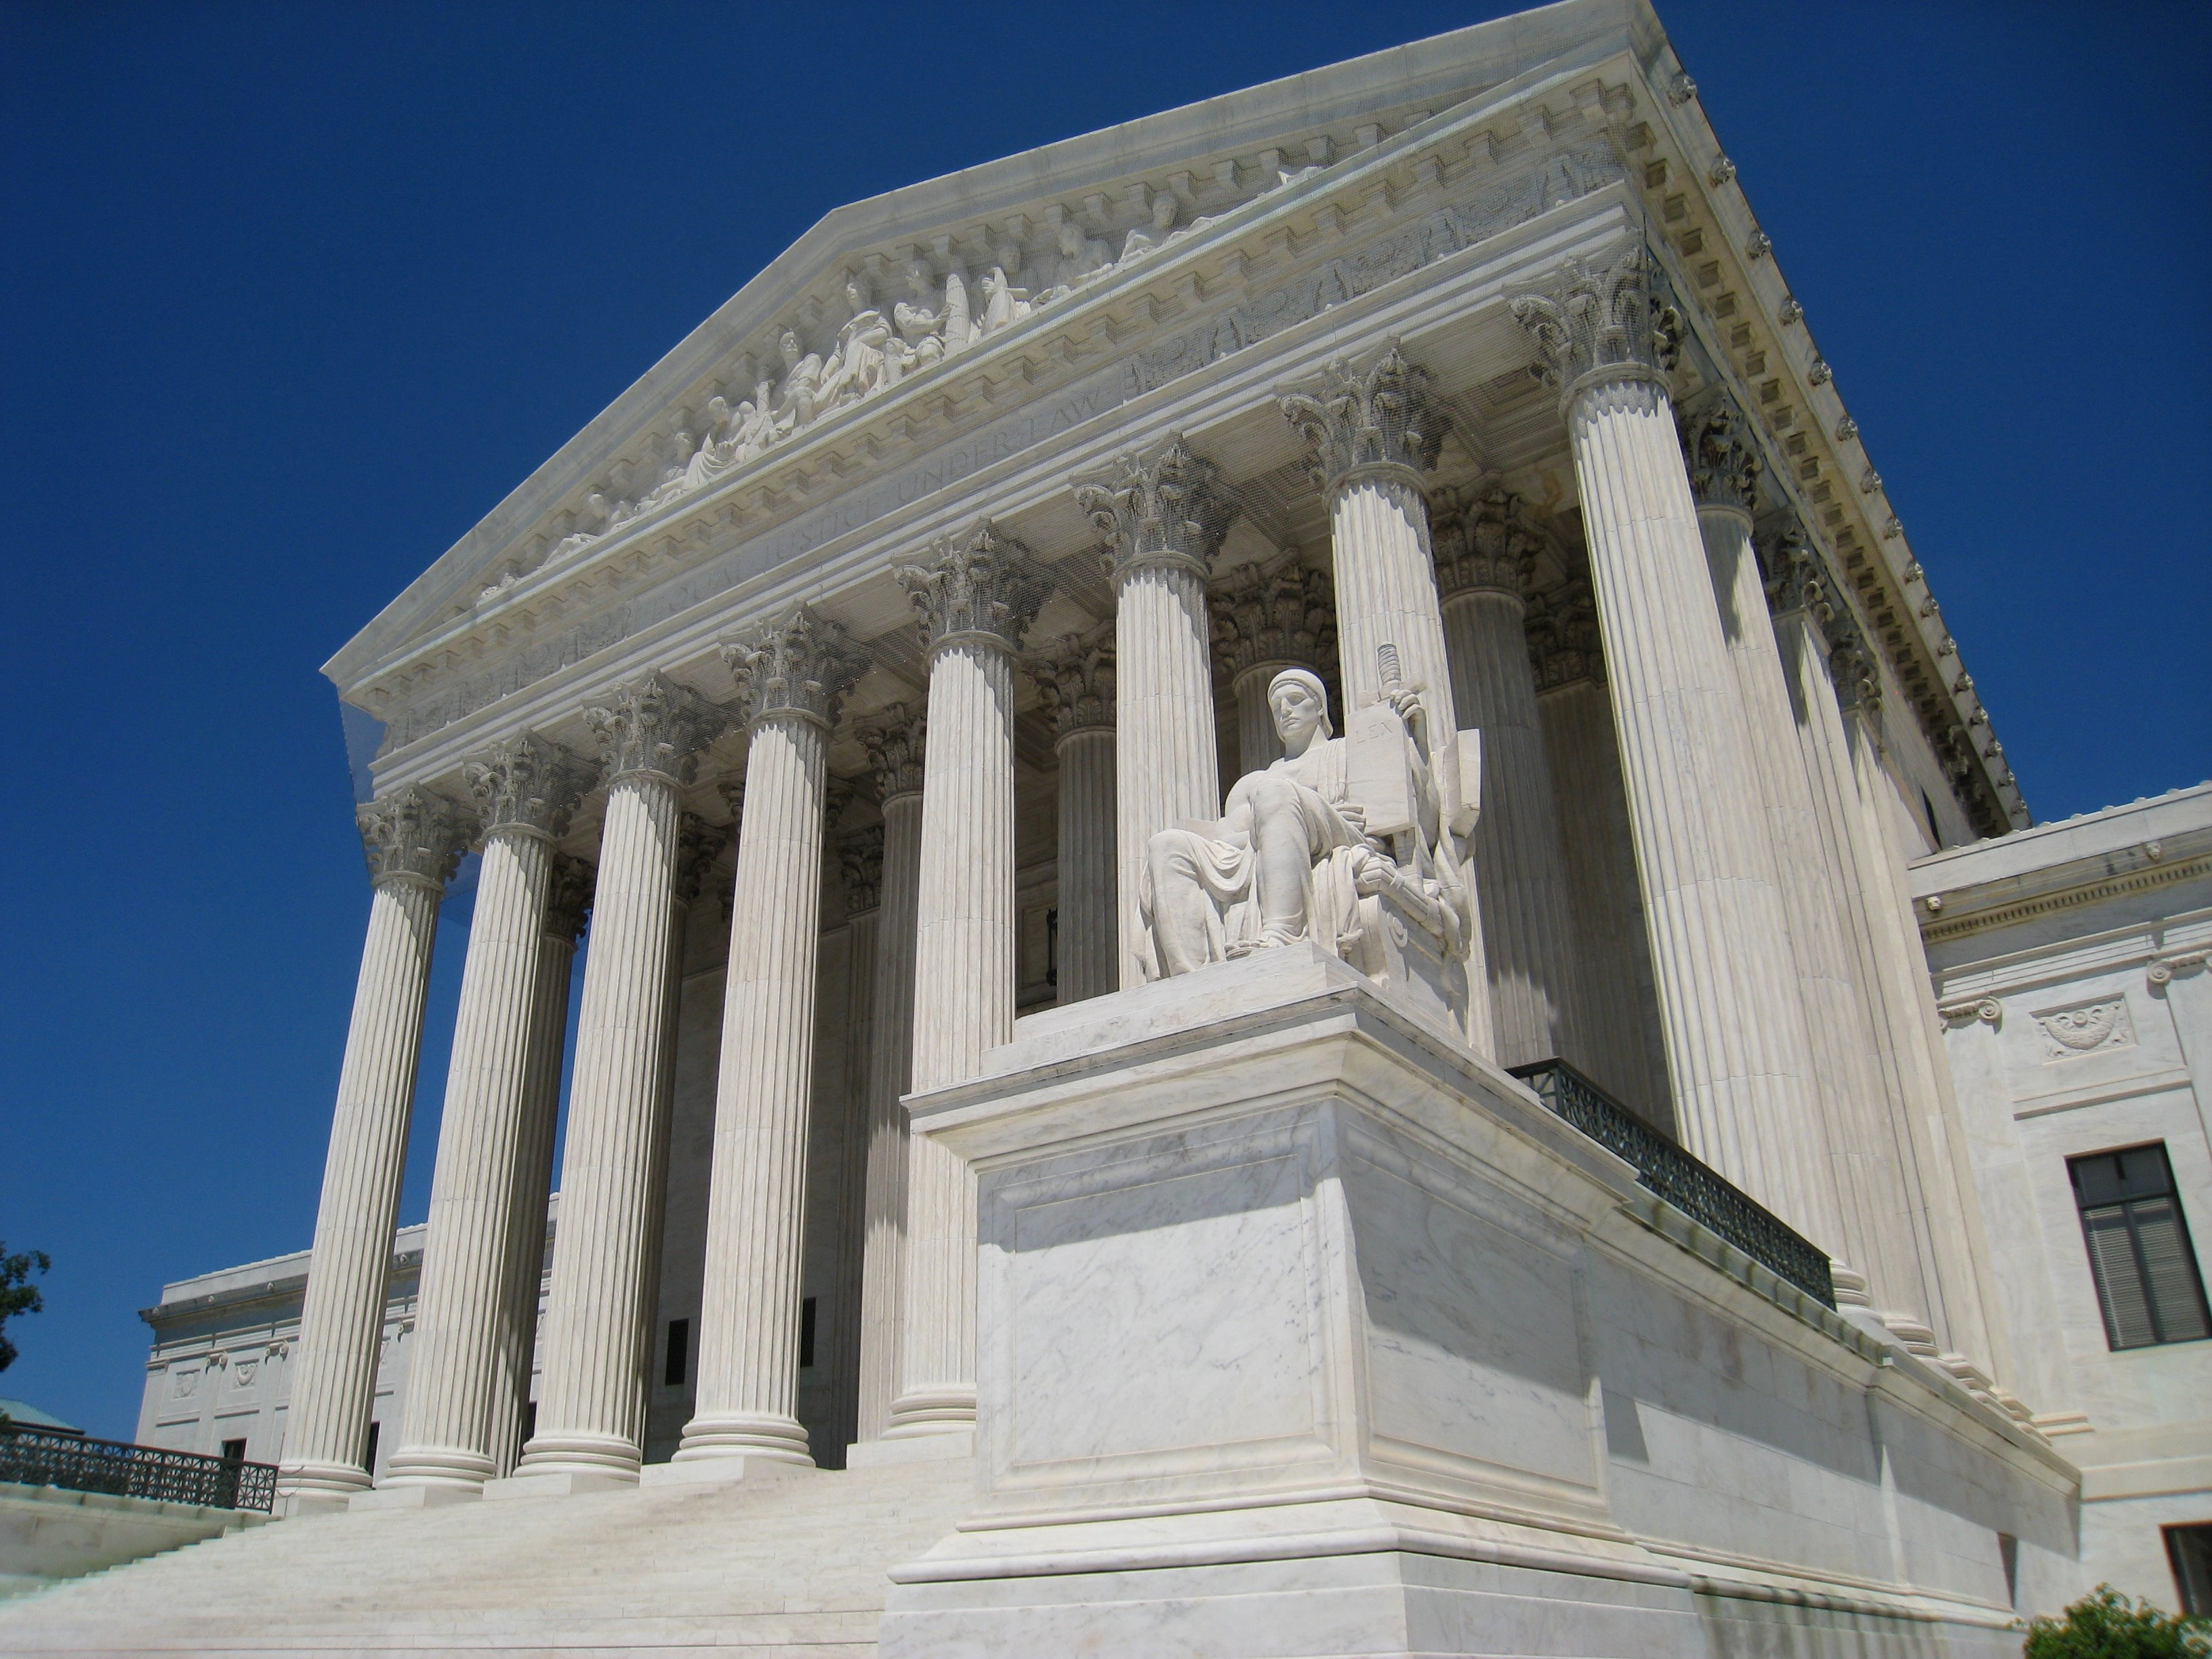 Supreme Court orders re-argument in 2 cases